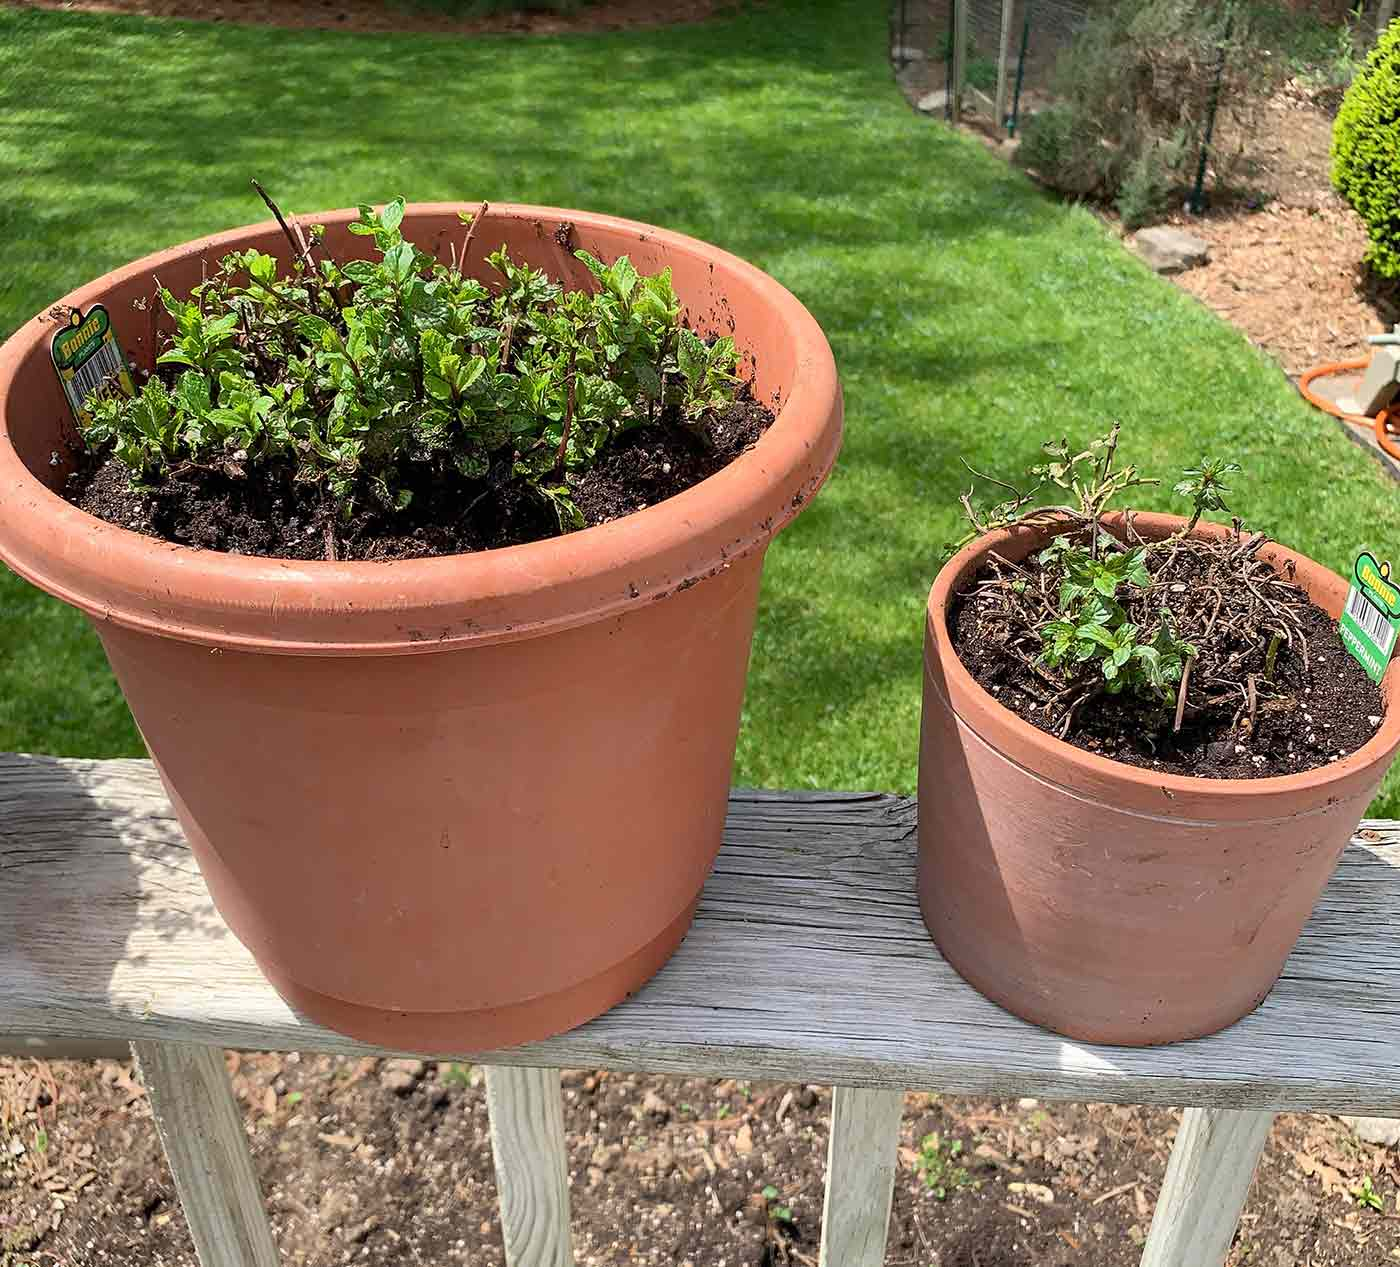 Peppermint and Spearmint with new spring growth, freshly repotted into larger pots.